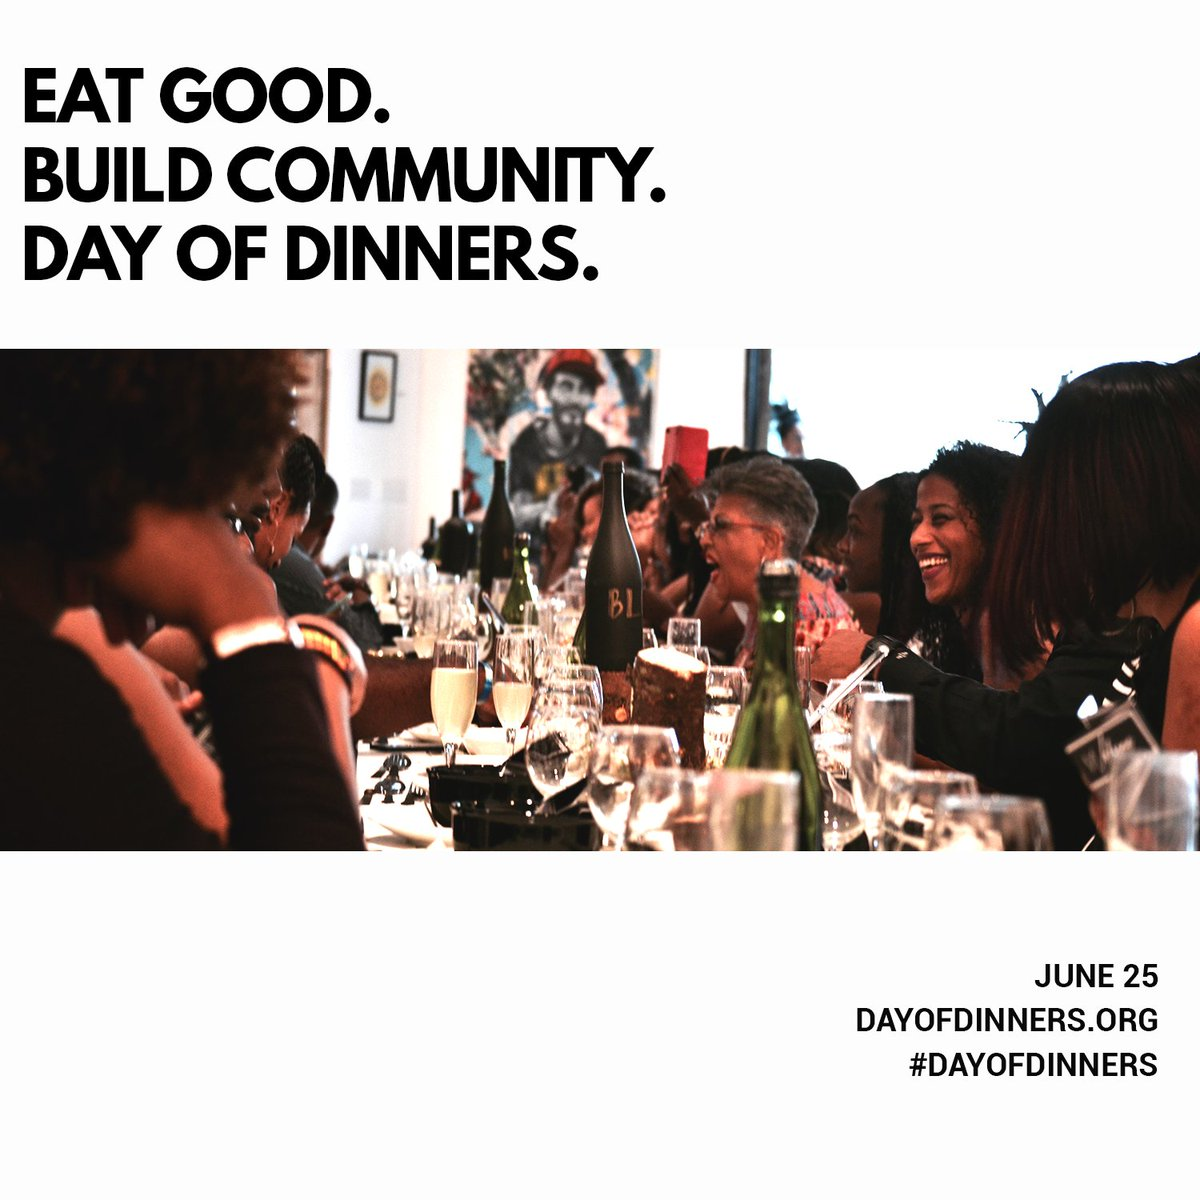 Tomorrow, we'll come together at dinner tables to form bonds that bring us closer. Pull up a chair: https://t.co/m2hrlAjoVT #DayofDinners